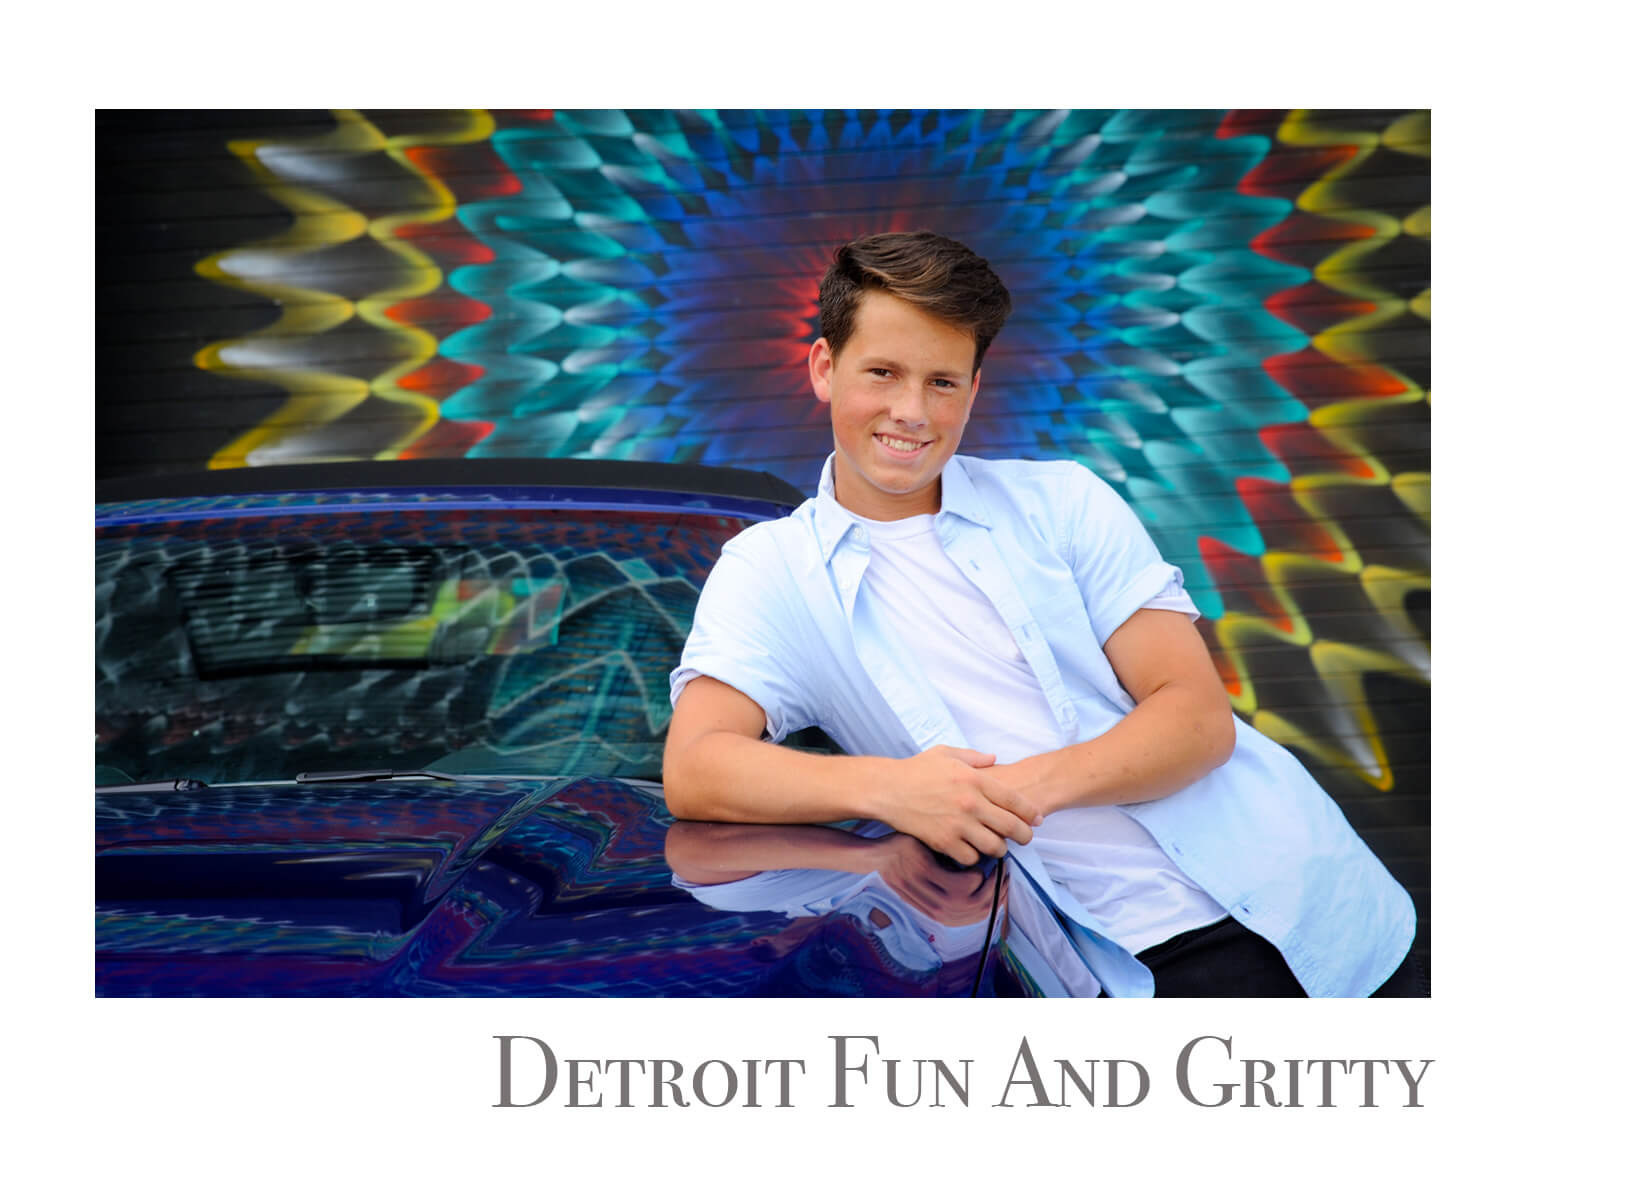 Auburn Hills offers a hometown feel to senior photos as well as having great water and fall features for senior pictures in Metro Detroit, Michigan.